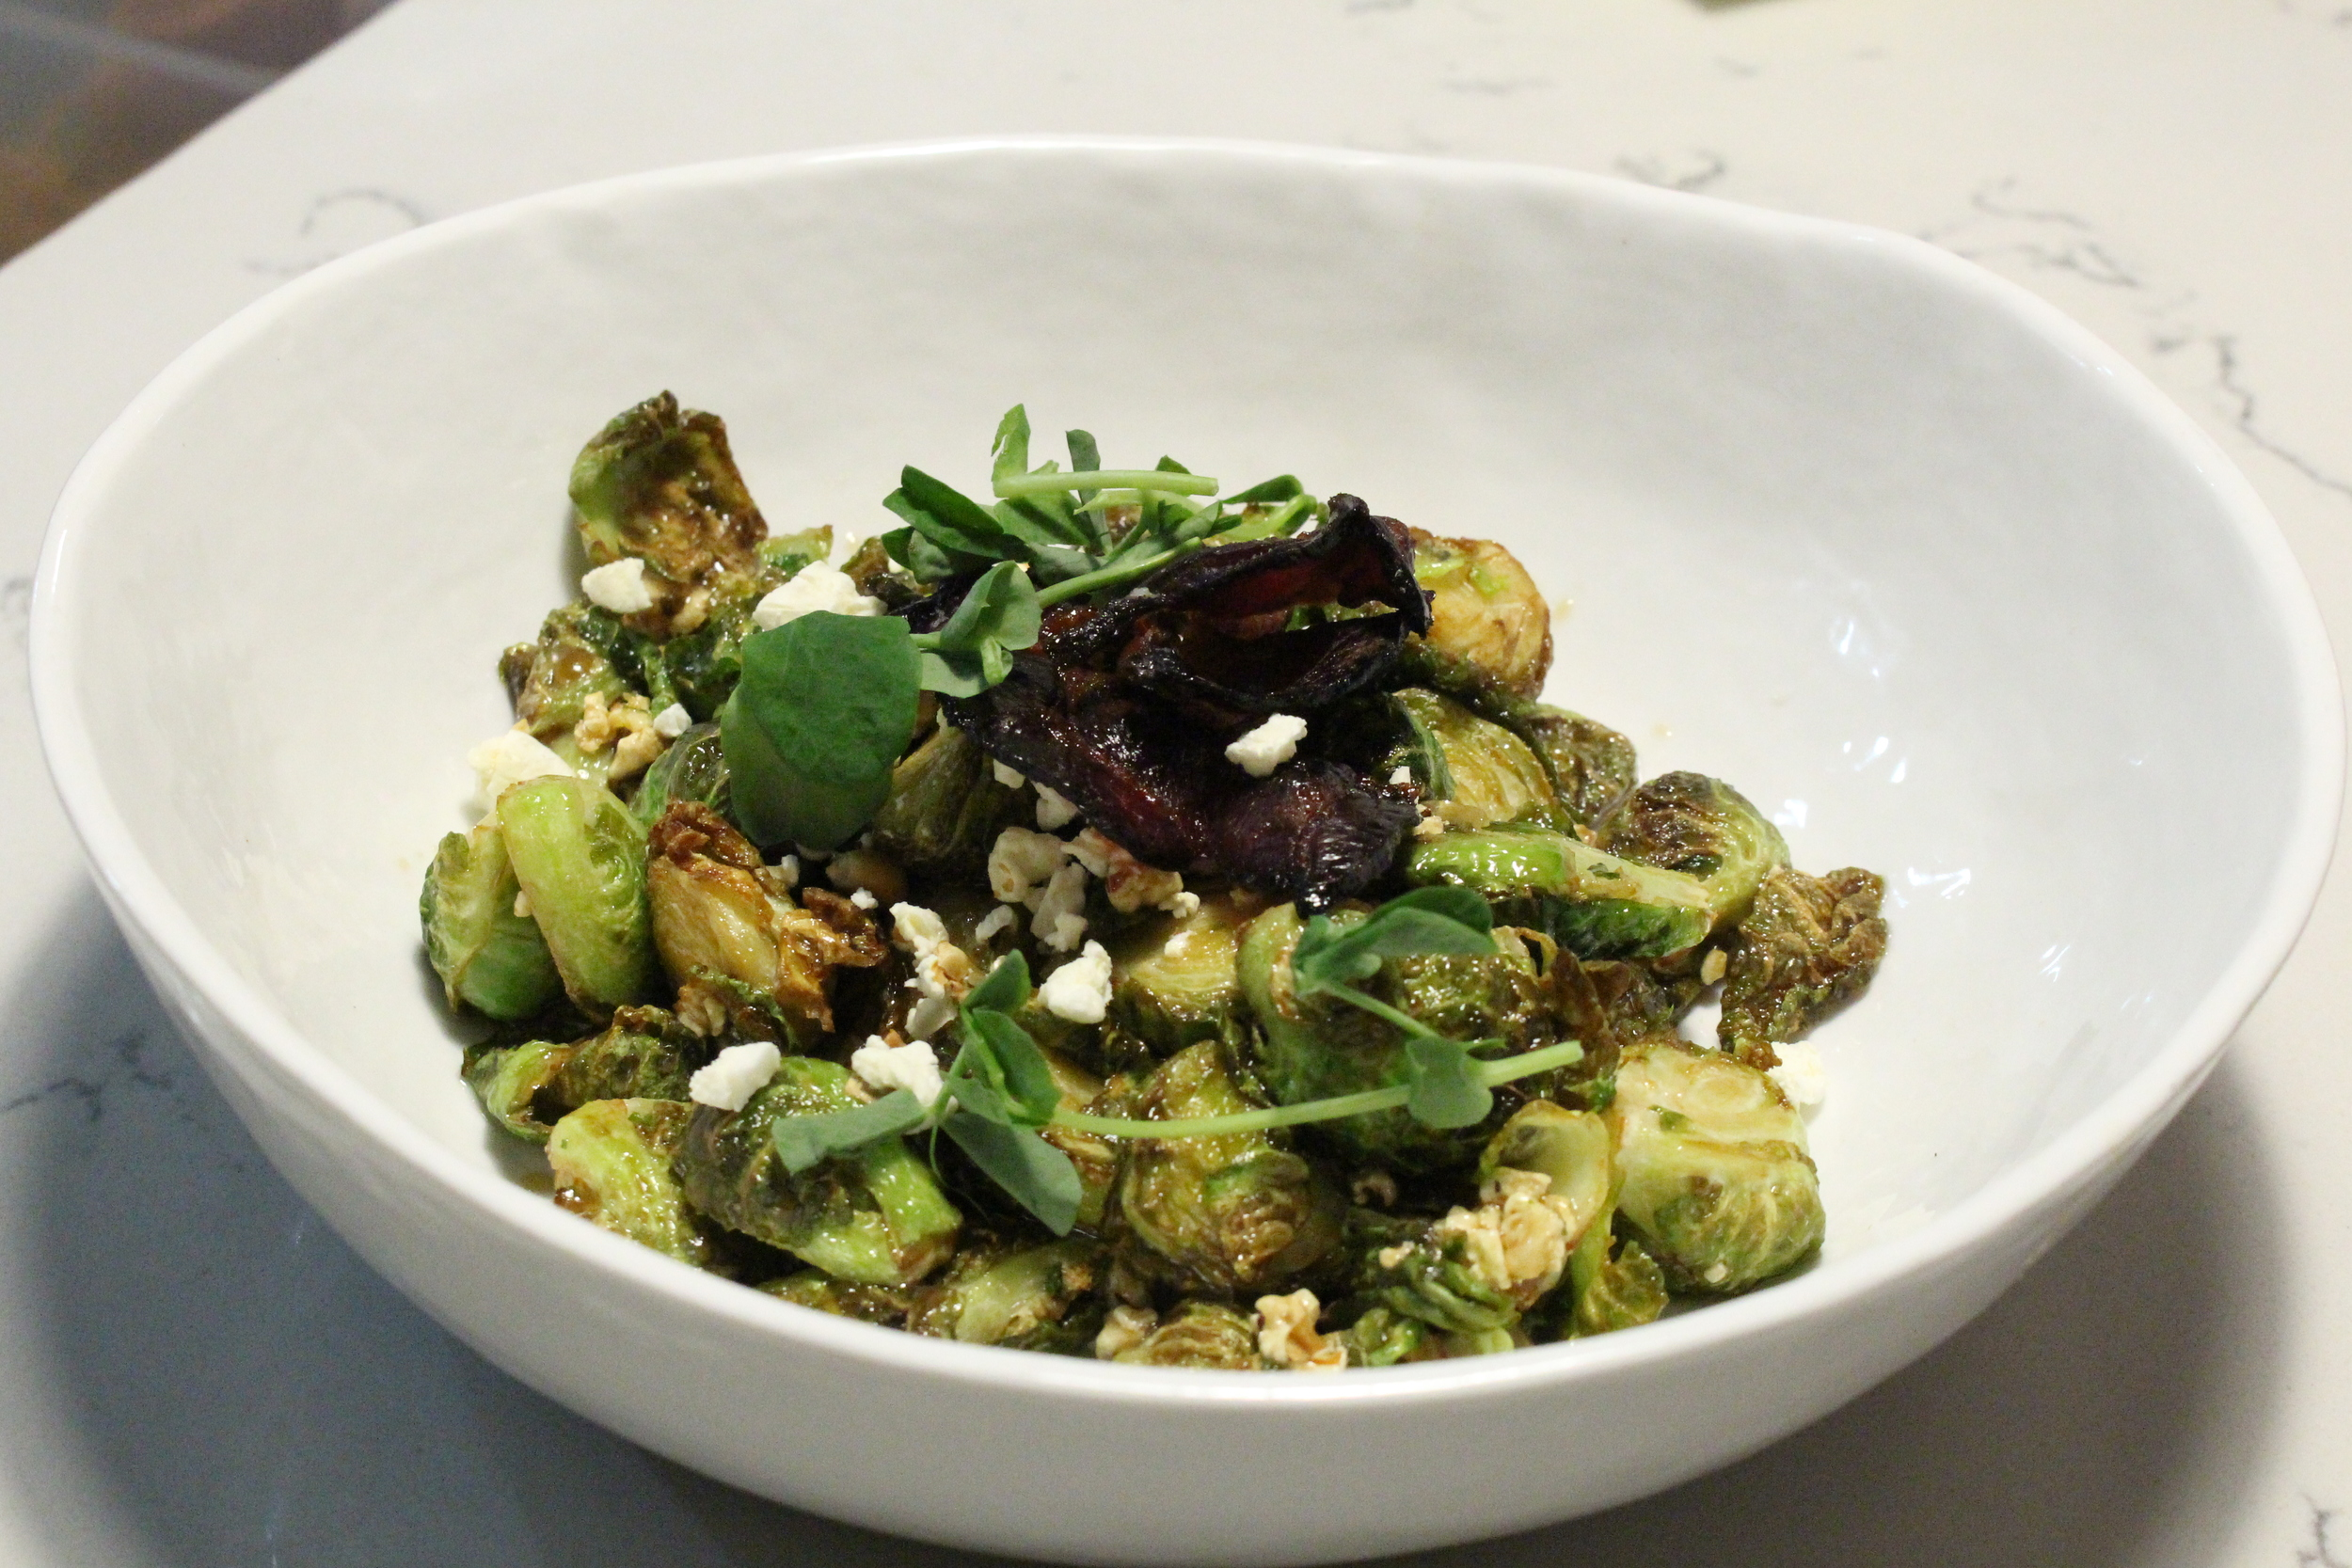 kettlecorn brussel sprouts